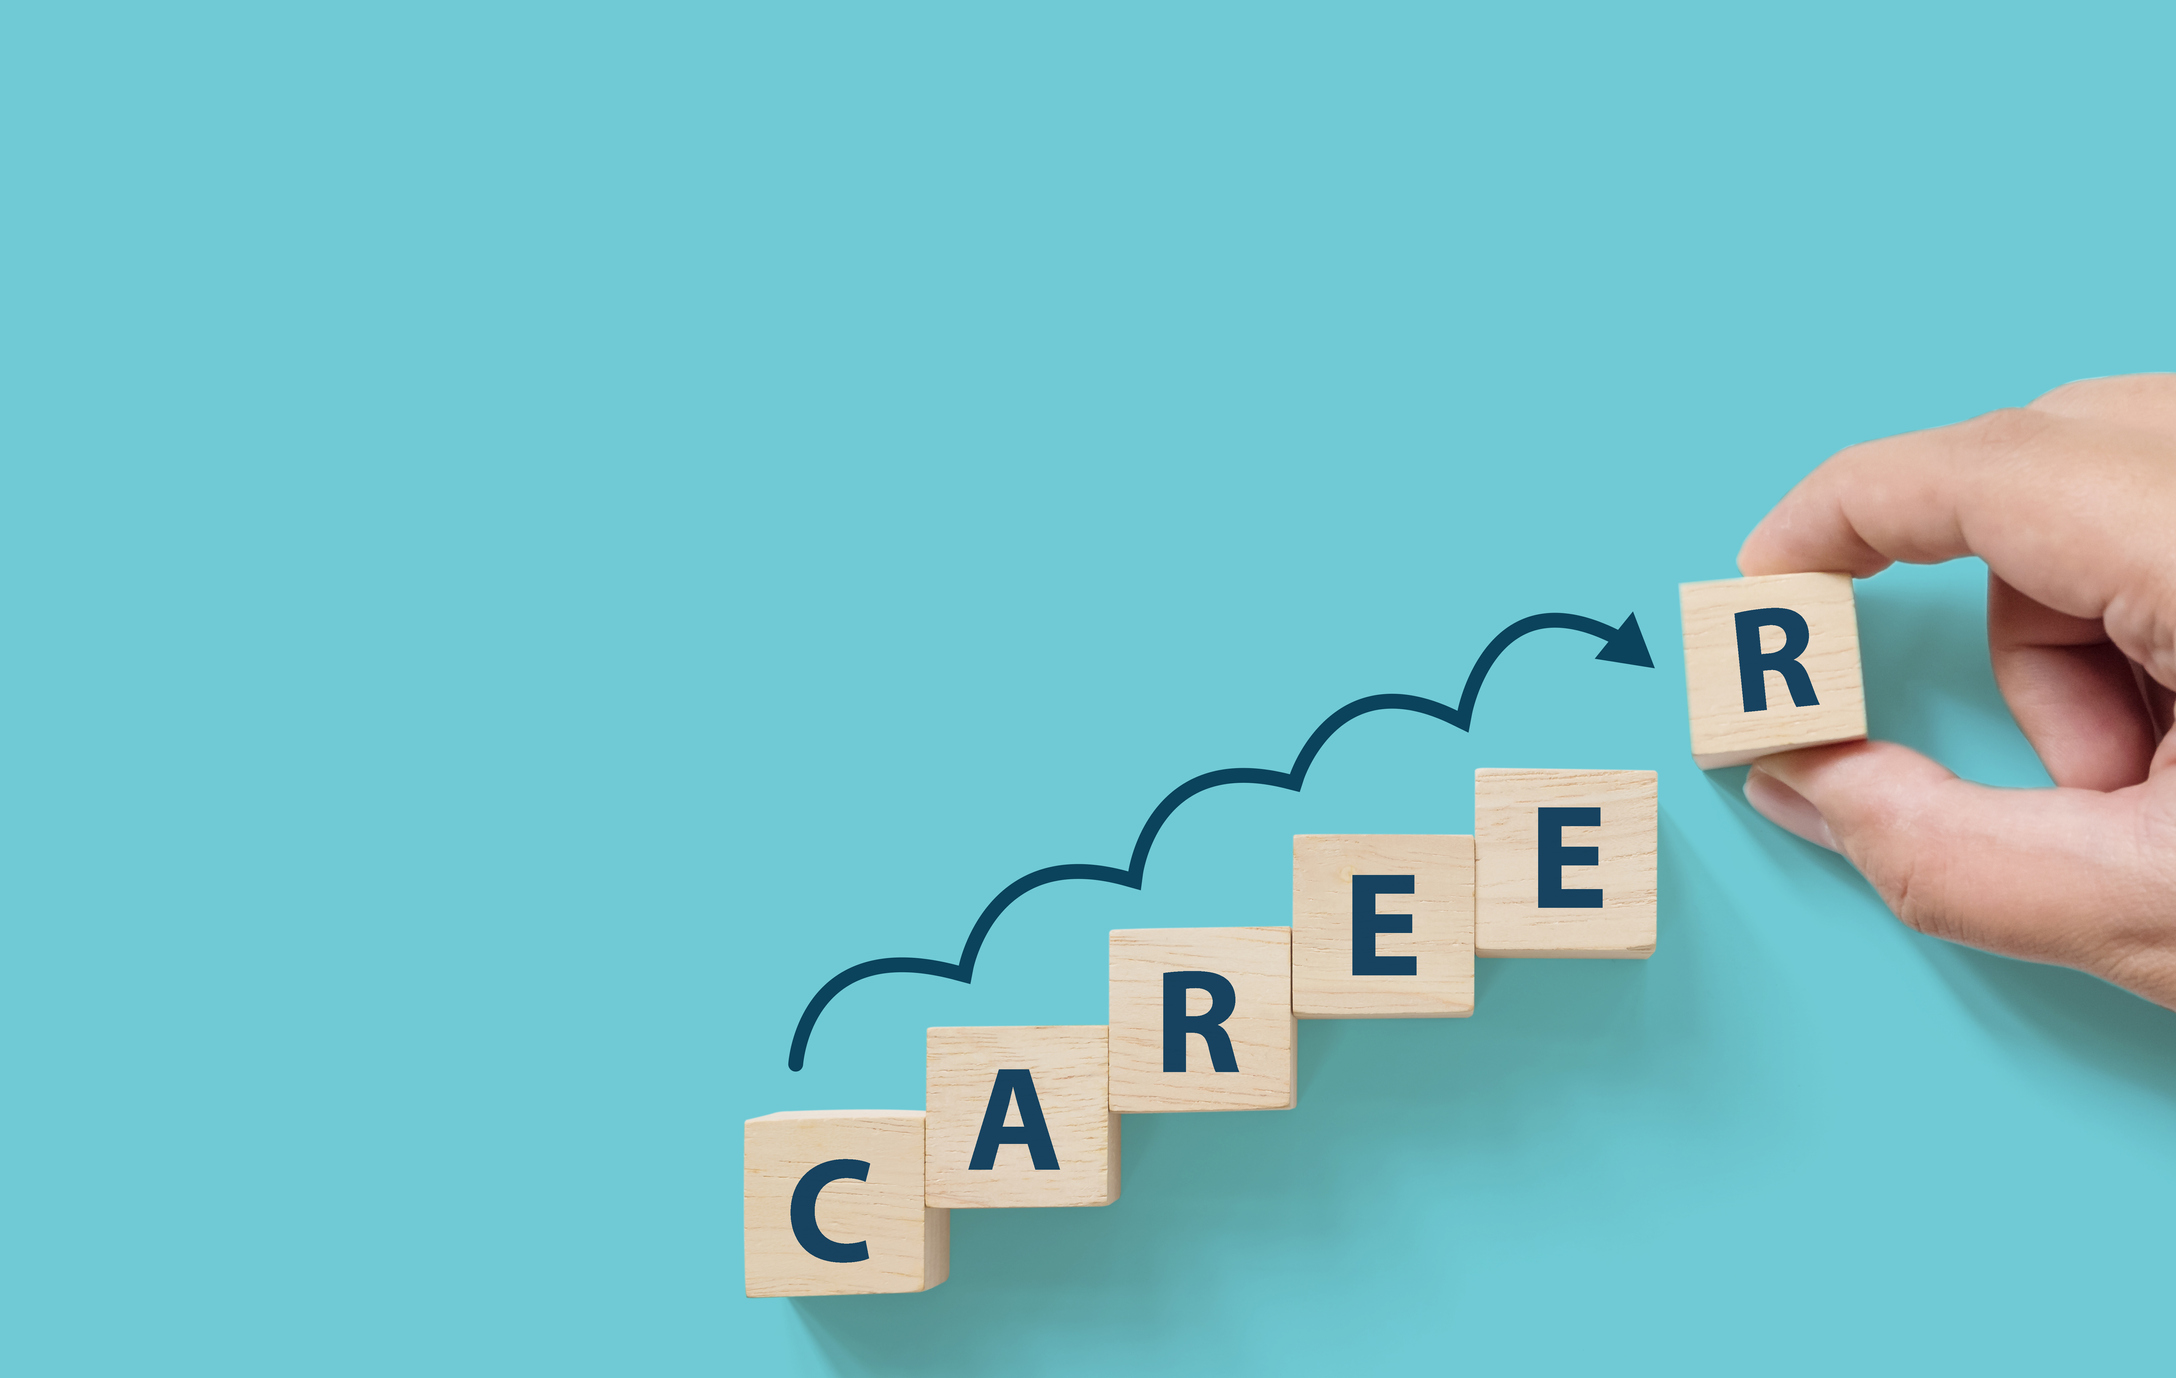 Things to know about the term career before choosing the one